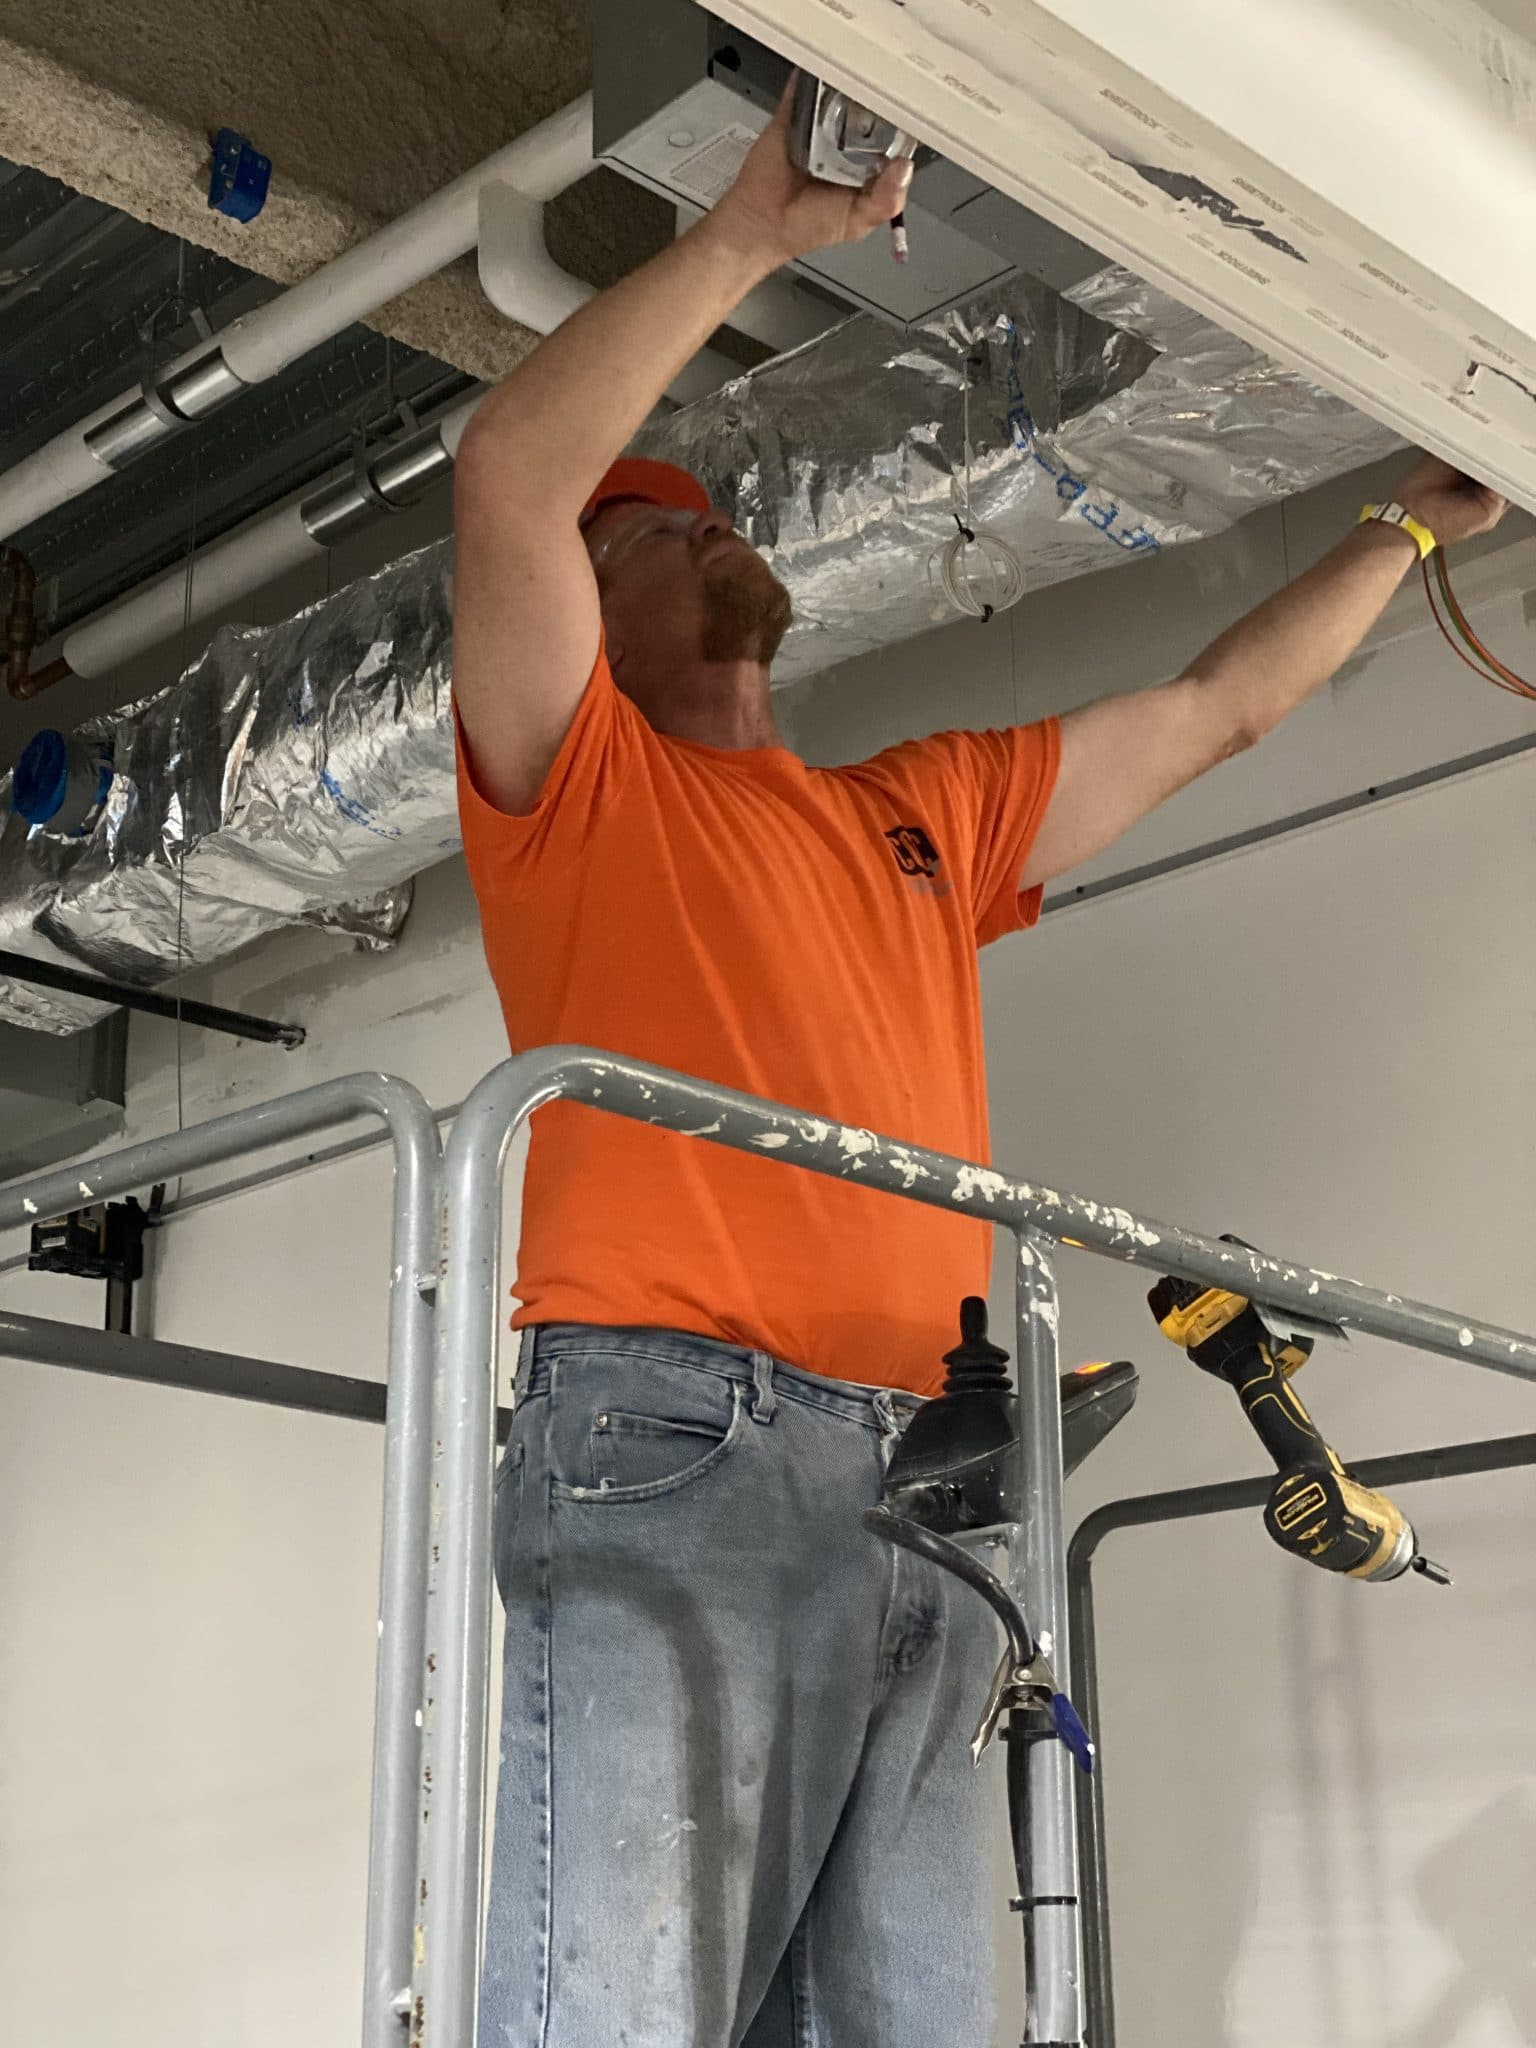 construction worker in orange shirt installs wiring